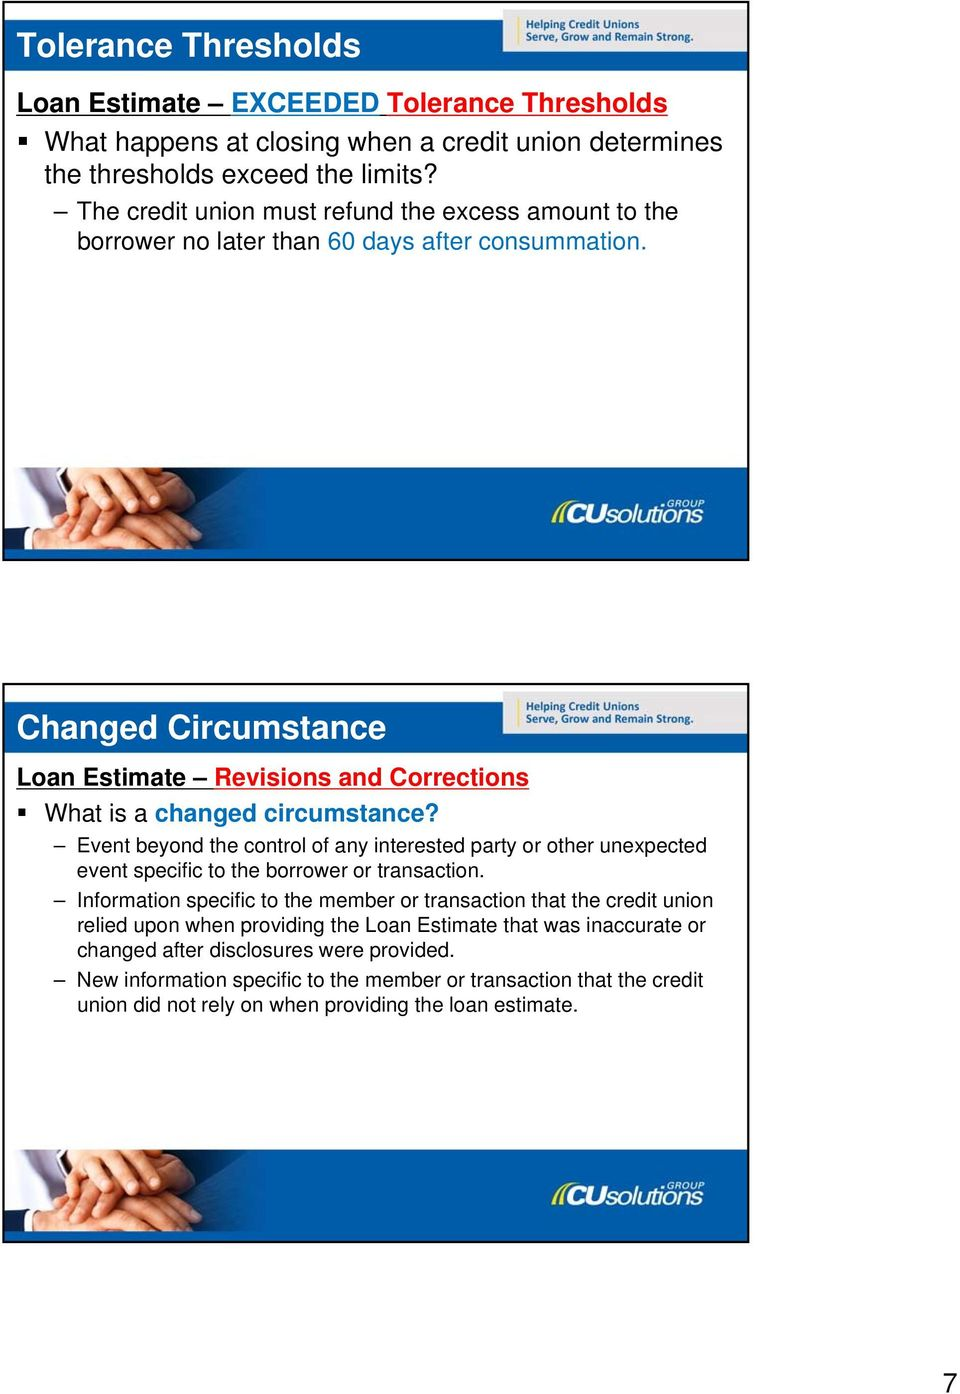 Changed Circumstance Loan Estimate Revisions and Corrections What is a changed circumstance?